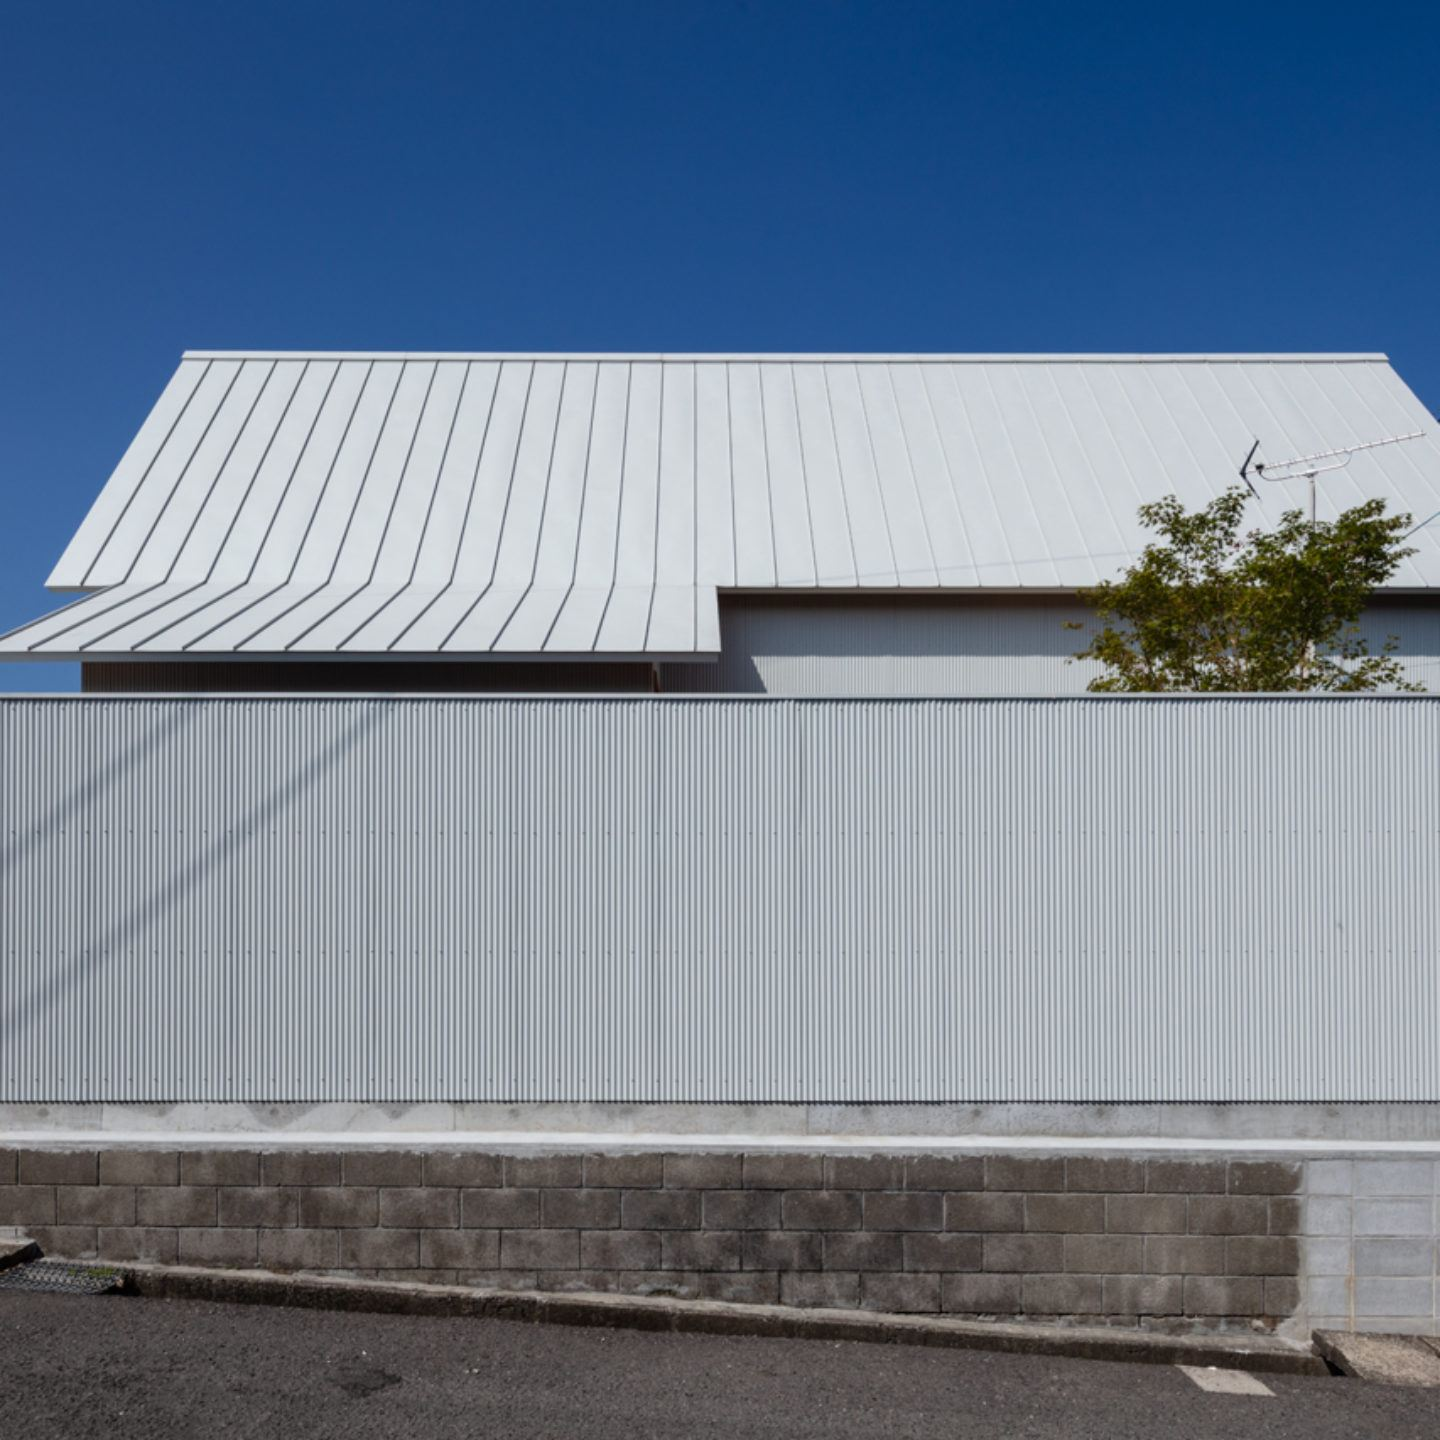 IGNANT-Architecture-YN-Architects-Masumitsu-House-2